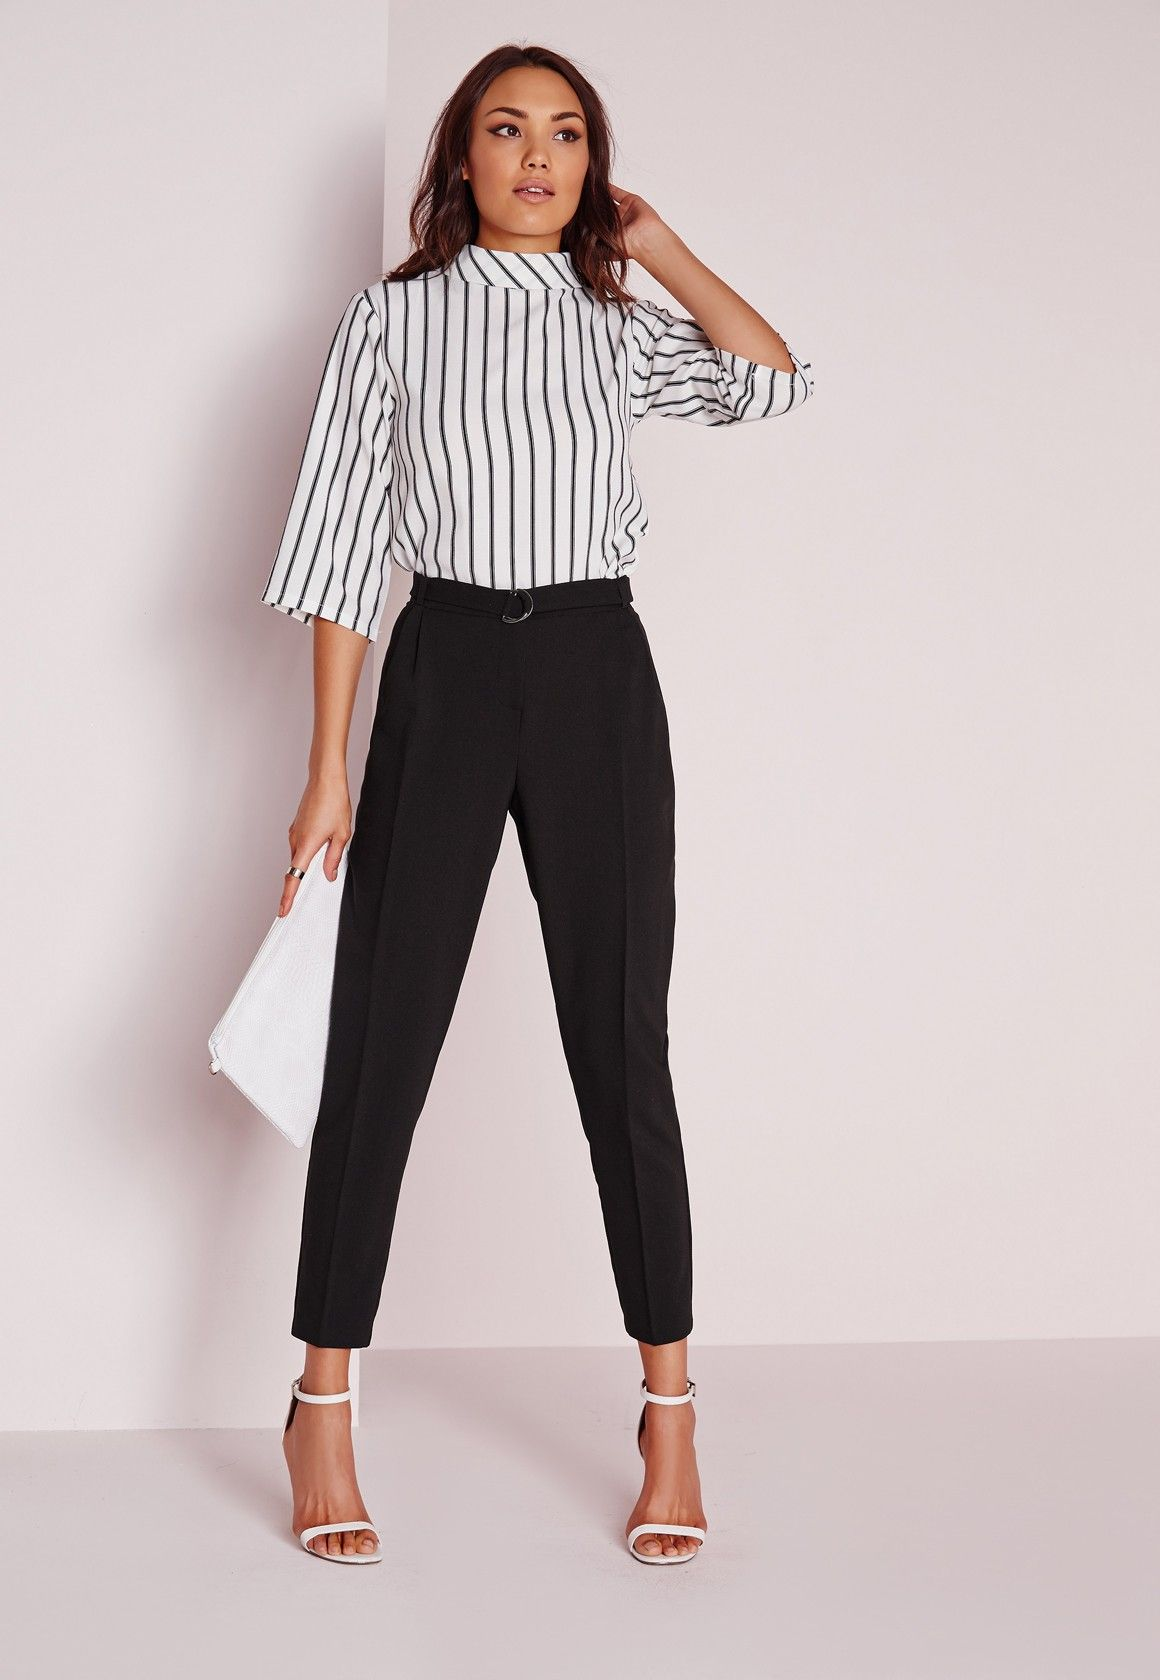 1d2387687e54 Missguided - Belted High Waist Cigarette Pants Black | Christmas ...